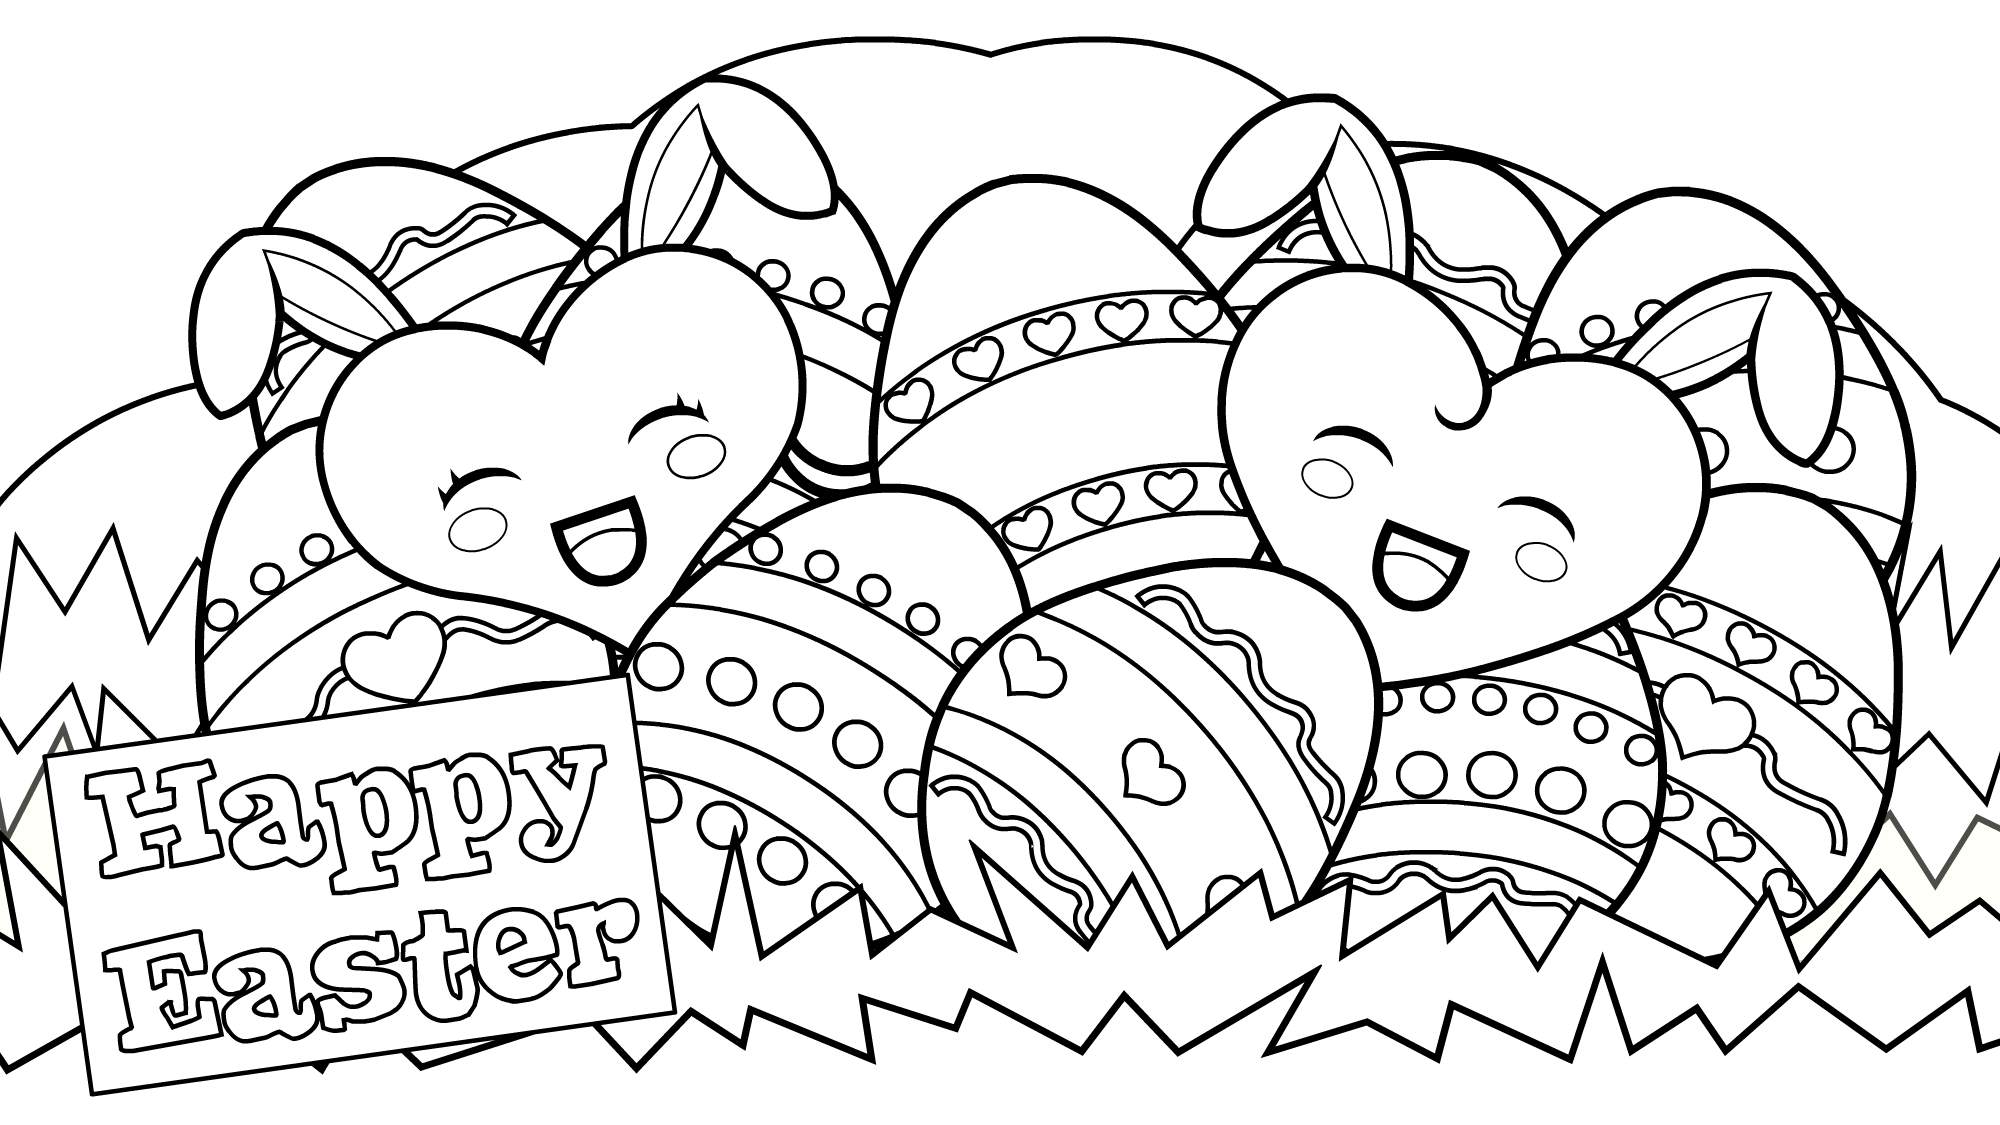 Happy Easter Coloring Pages - Best Coloring Pages For Kids